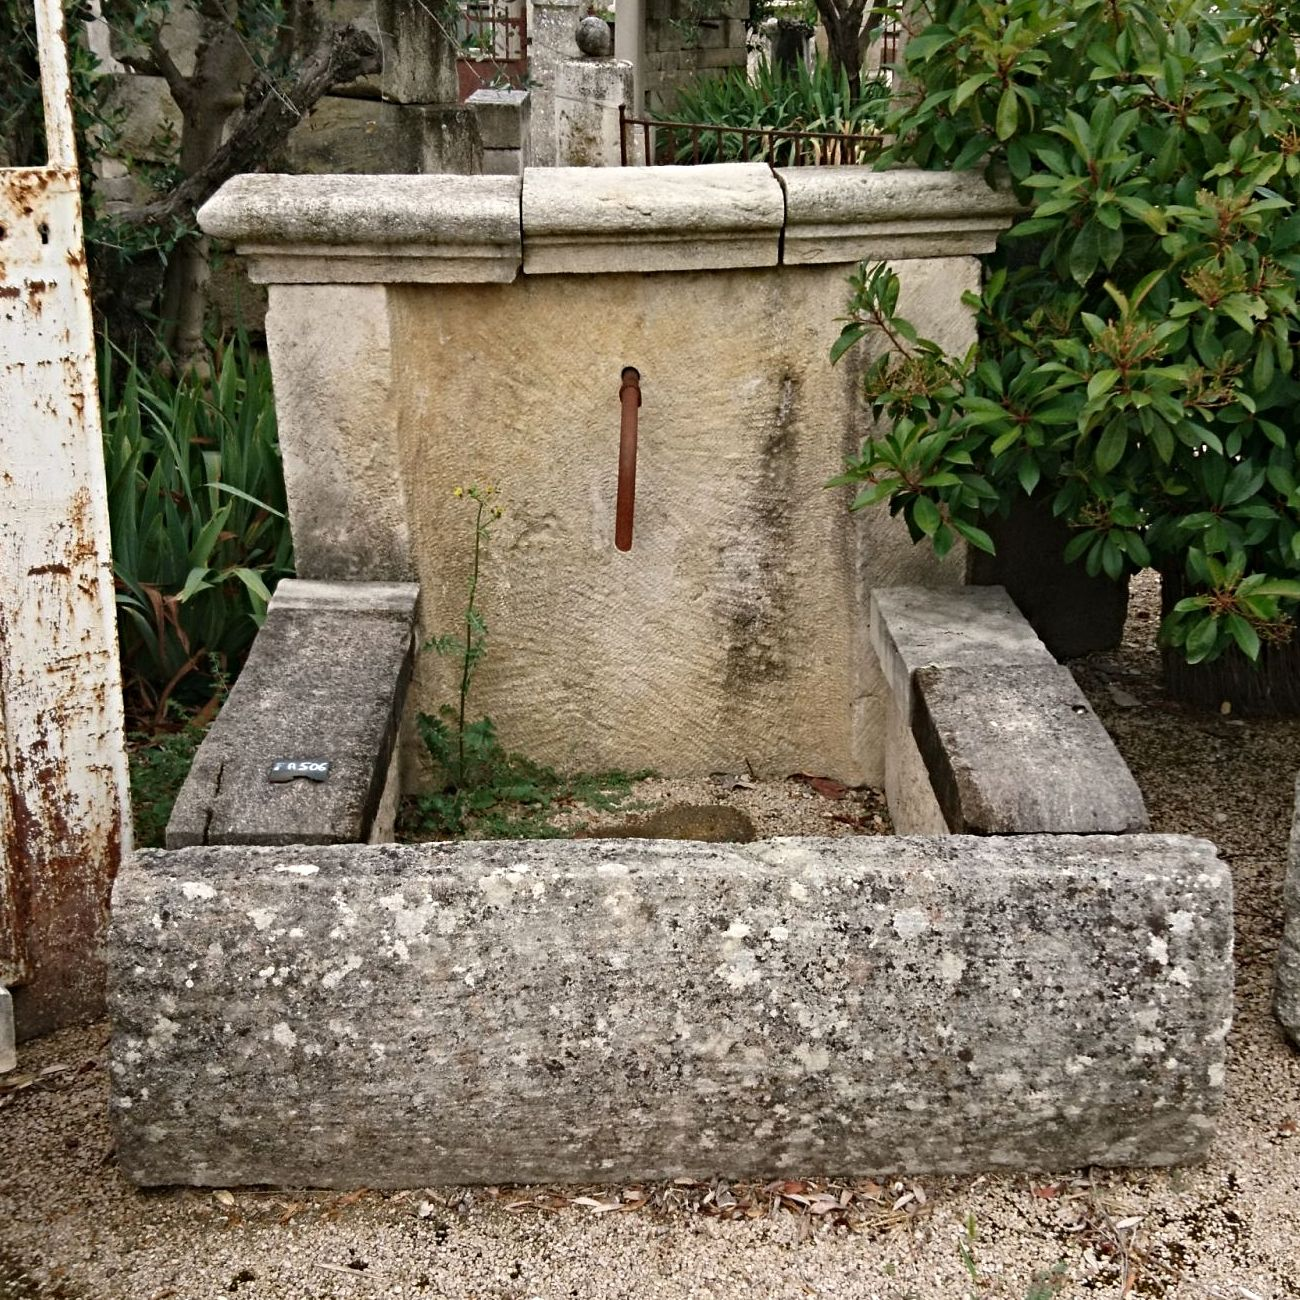 Nice rustic fountain with large copings - a stone fountain composed of a basin and a pediment.